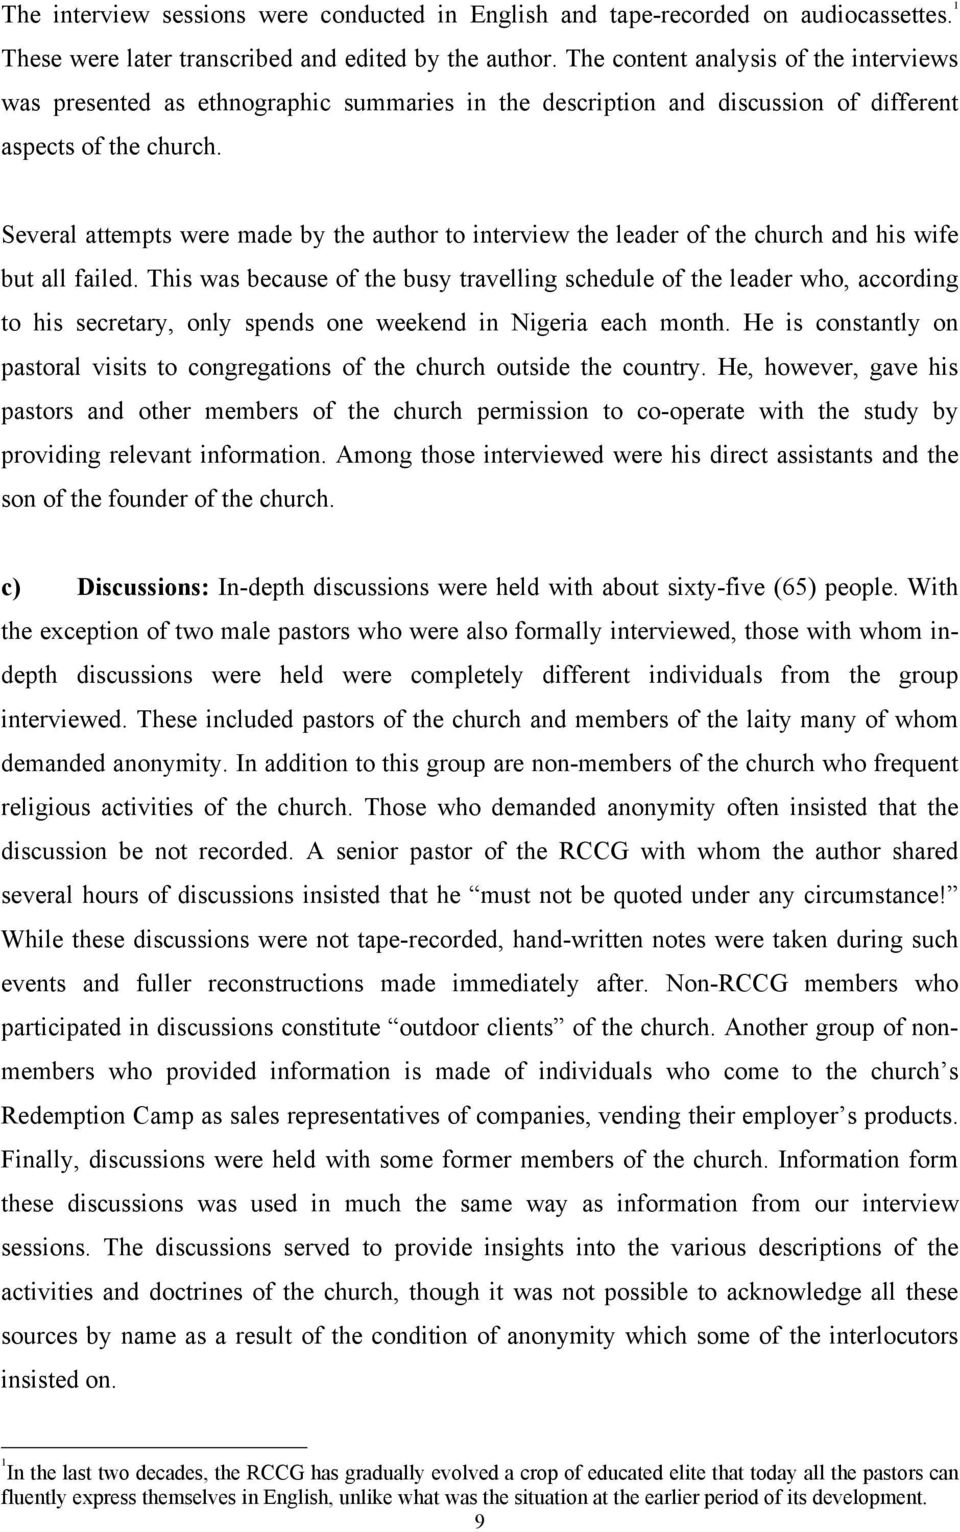 Several attempts were made by the author to interview the leader of the  church and his